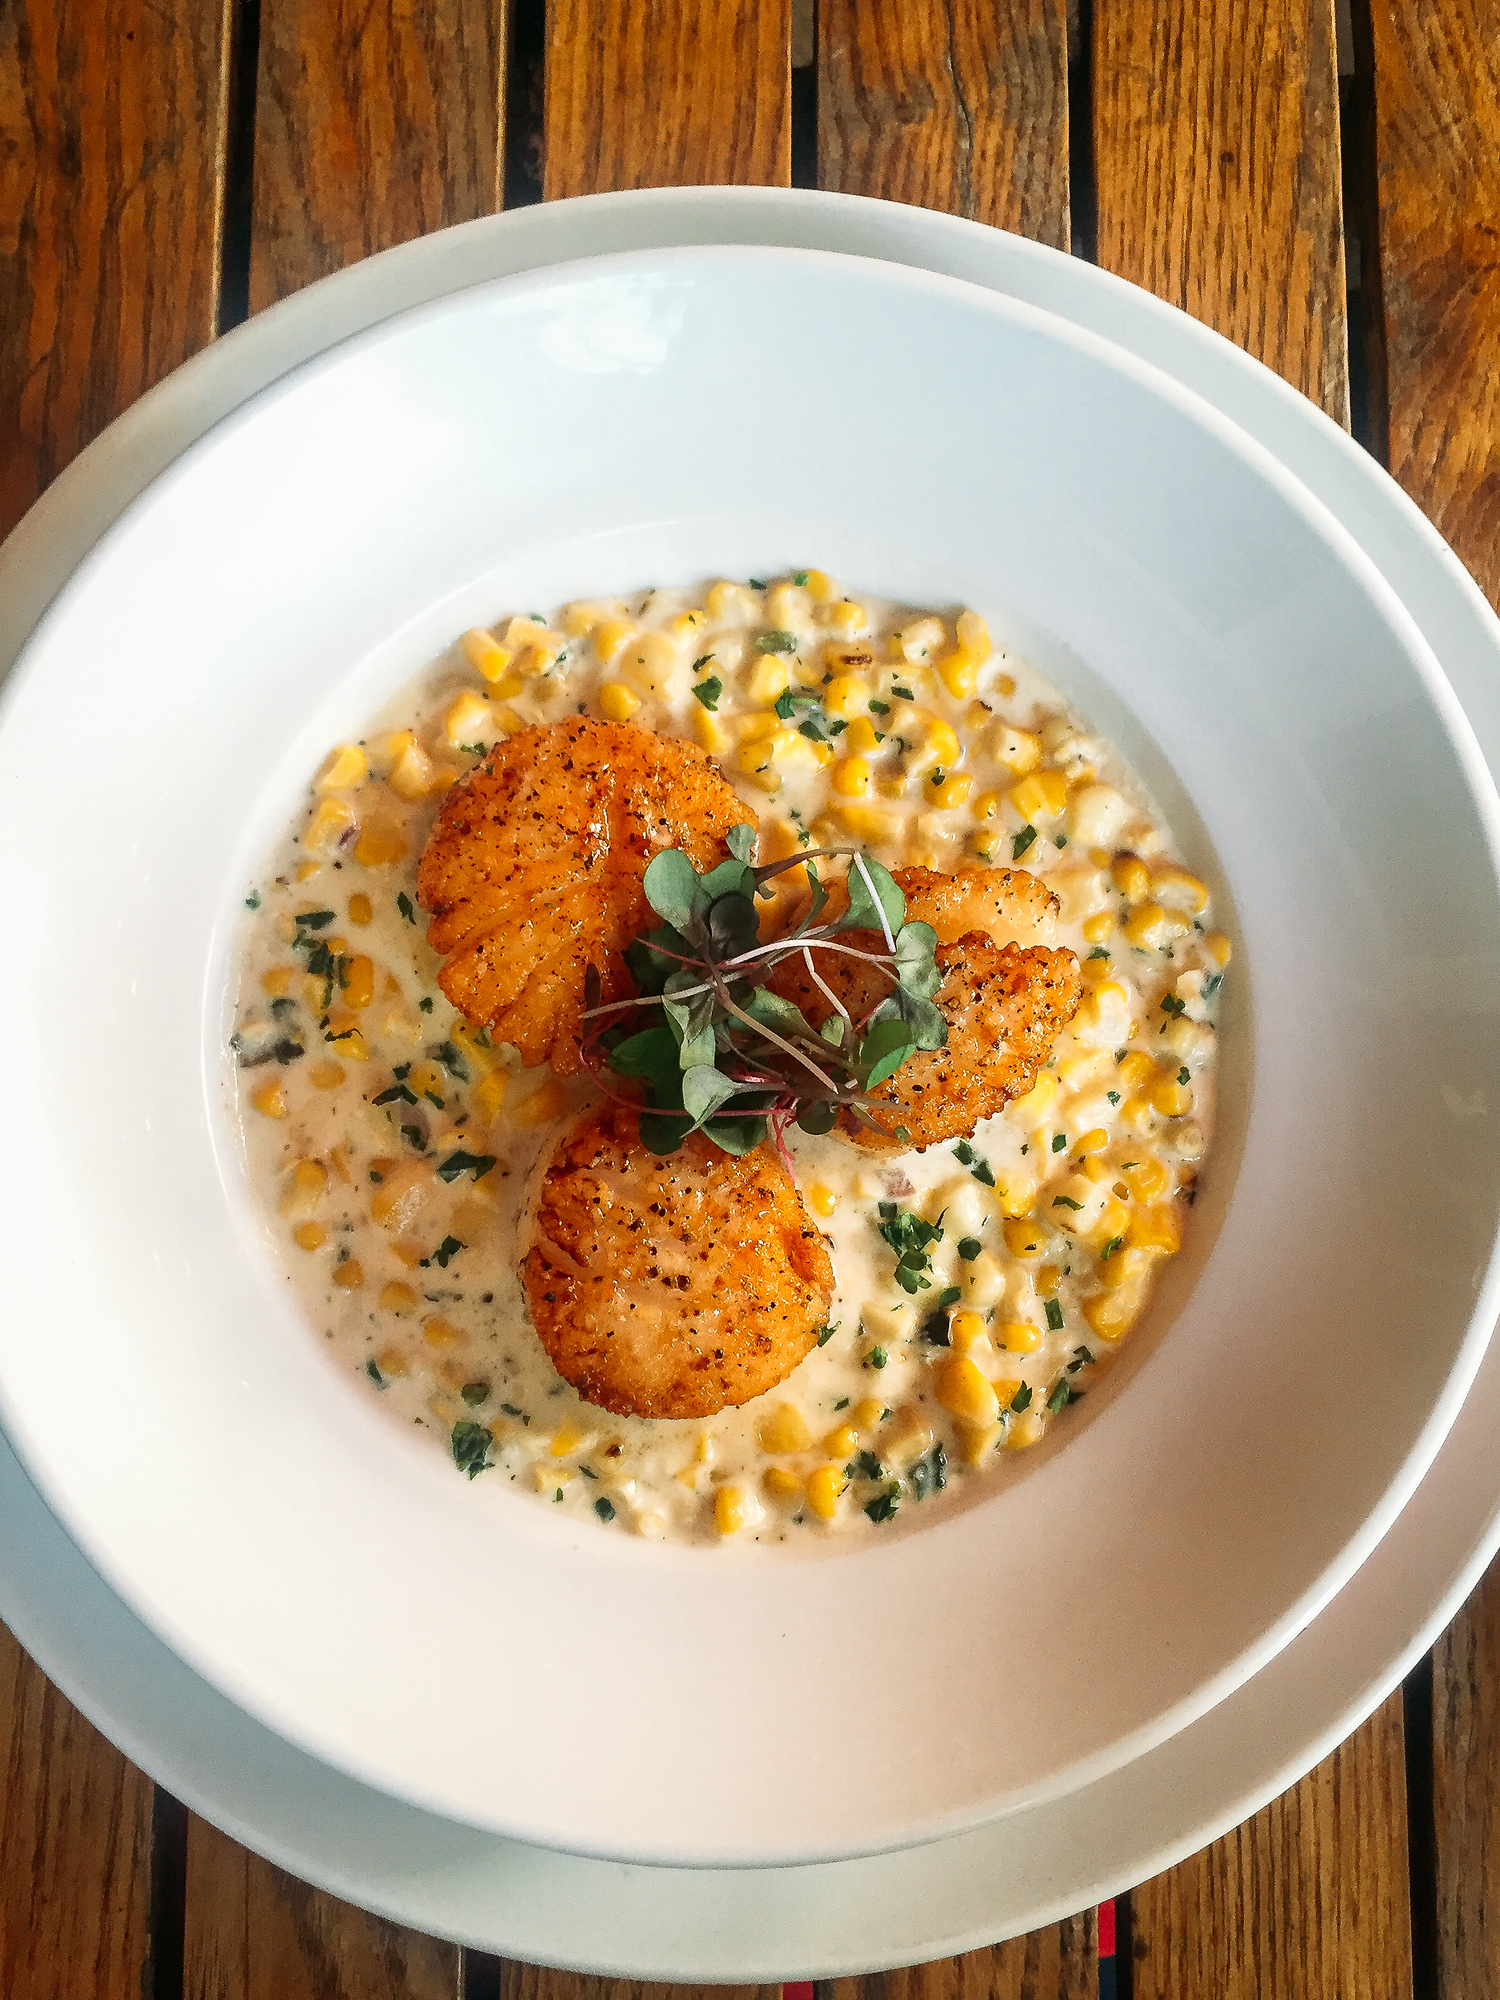 MADE is just one of many places to eat in Sarasota, Florida. Here is the scallops and corn risotto.